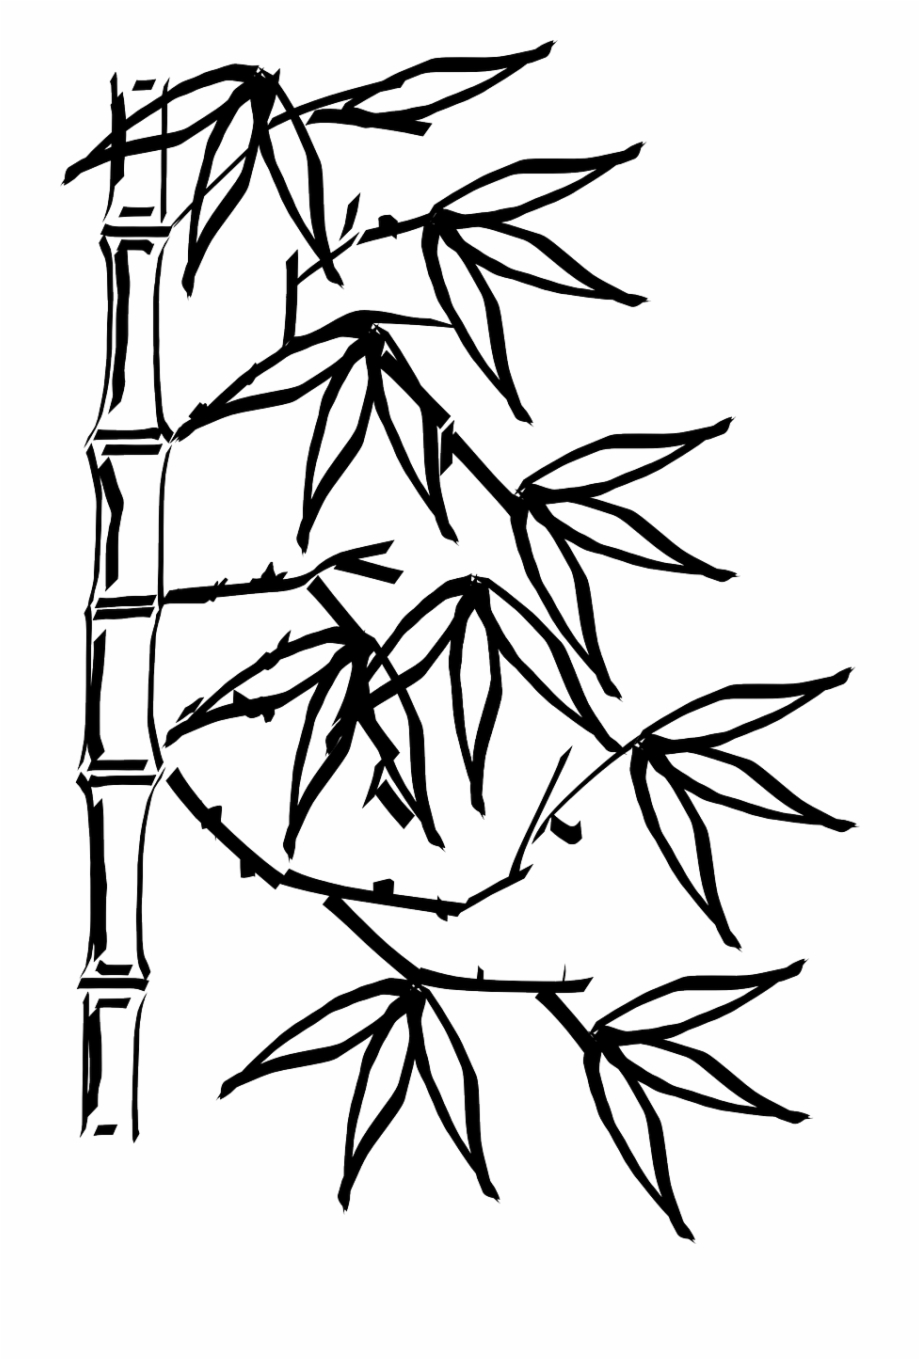 Bamboo Plant Leaves Chinese Png Image Bamboo Black And White Transparent Png Download 924887 Vippng